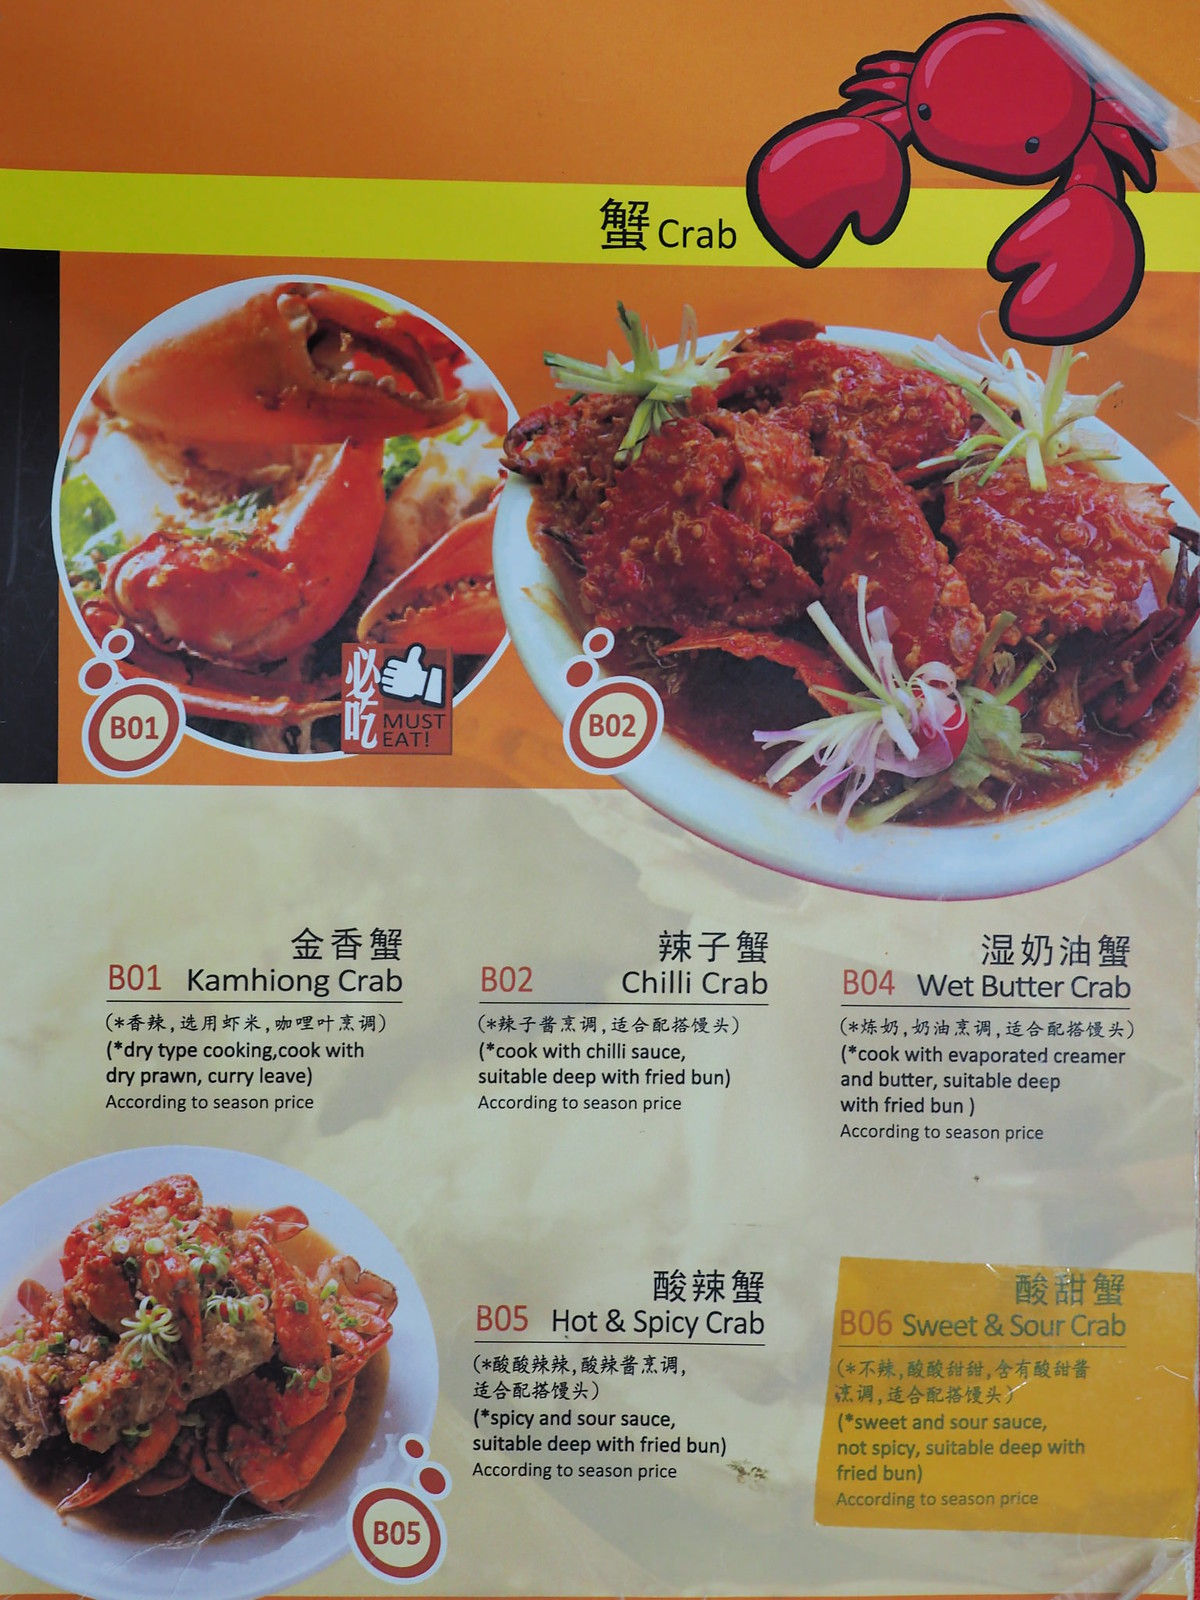 Crab menu from Pangkor Village Seafood, Taman Megah